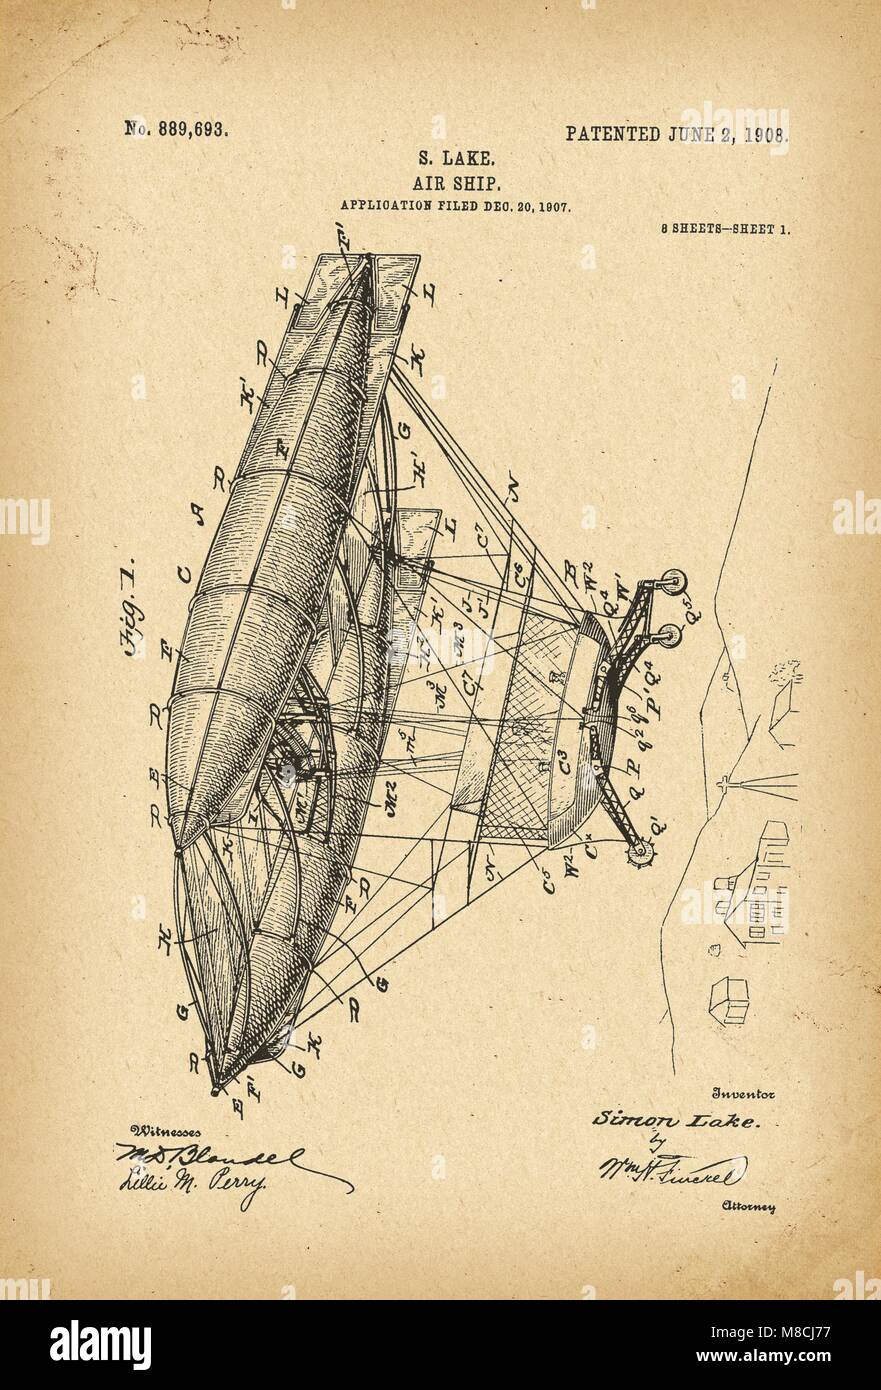 hight resolution of 1907 patent flying machine air ship history invention